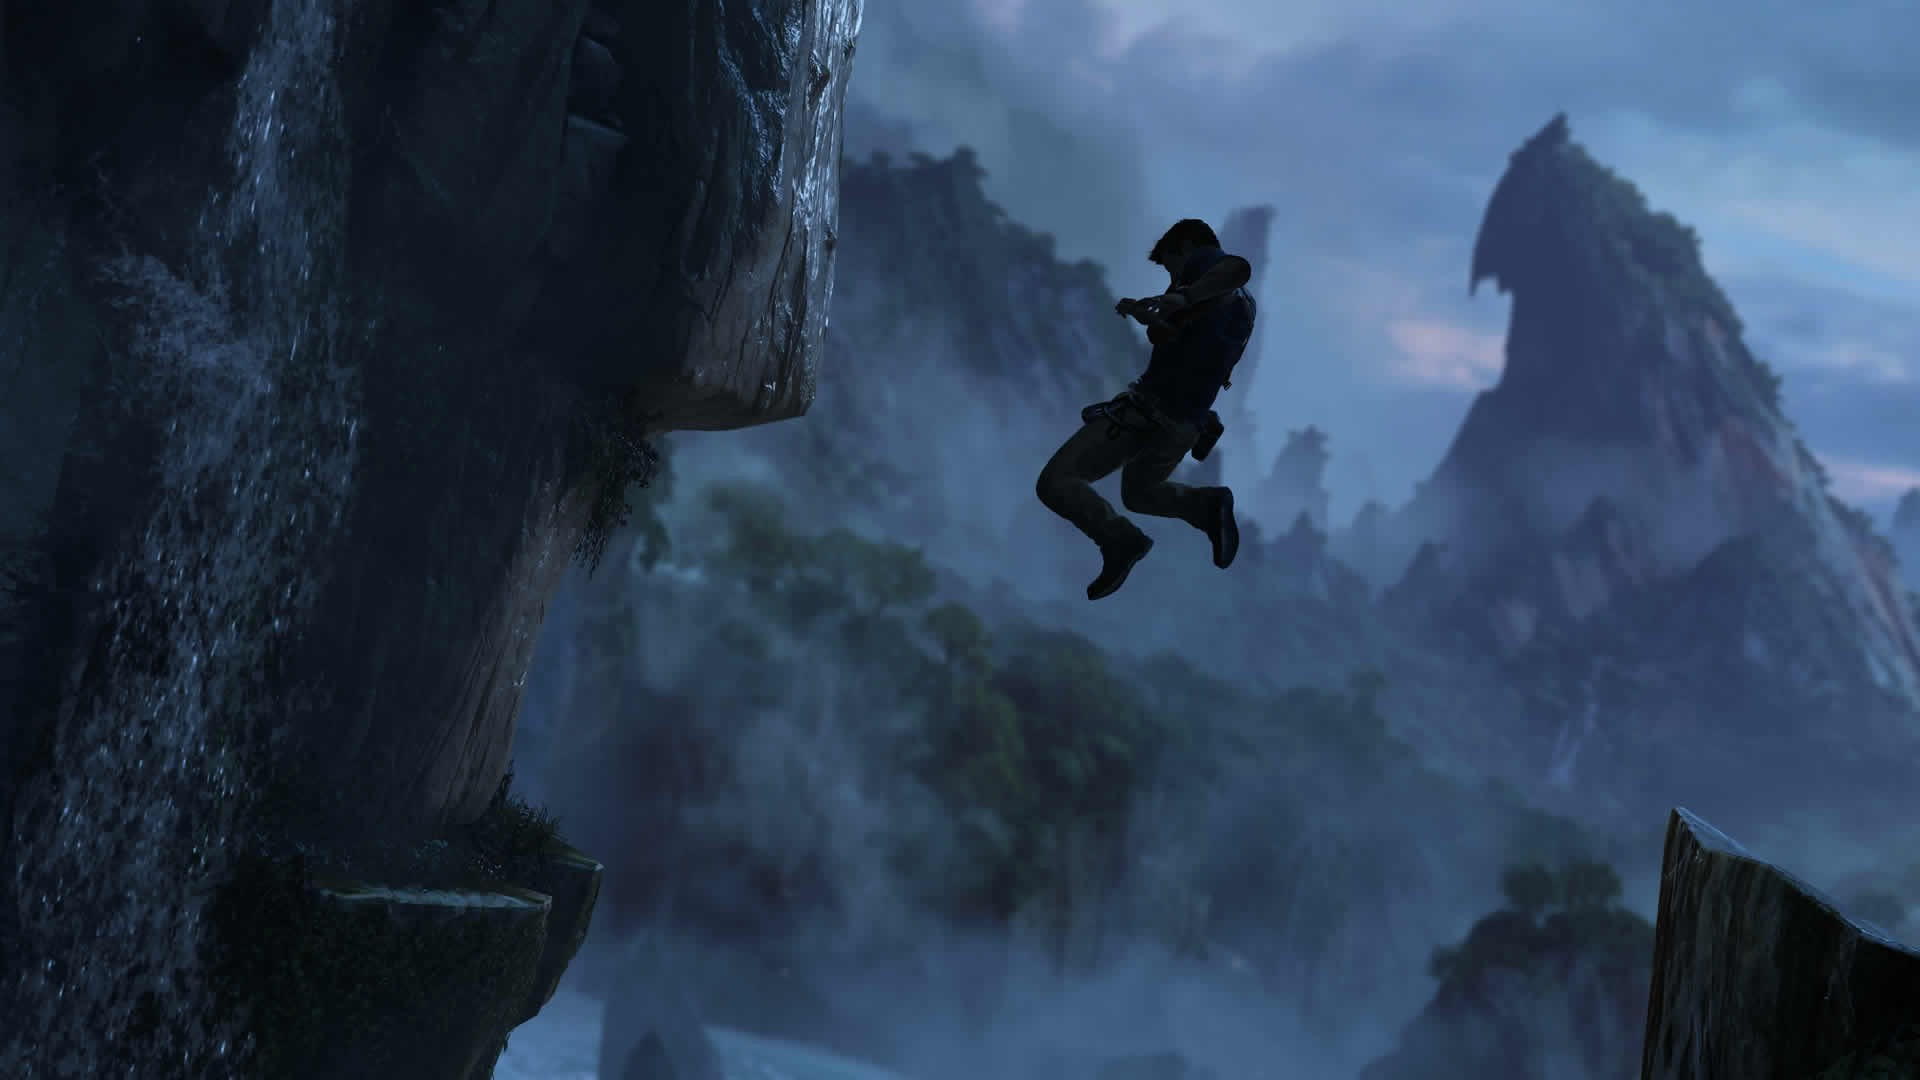 background - Uncharted 4 se uvedl skandálem